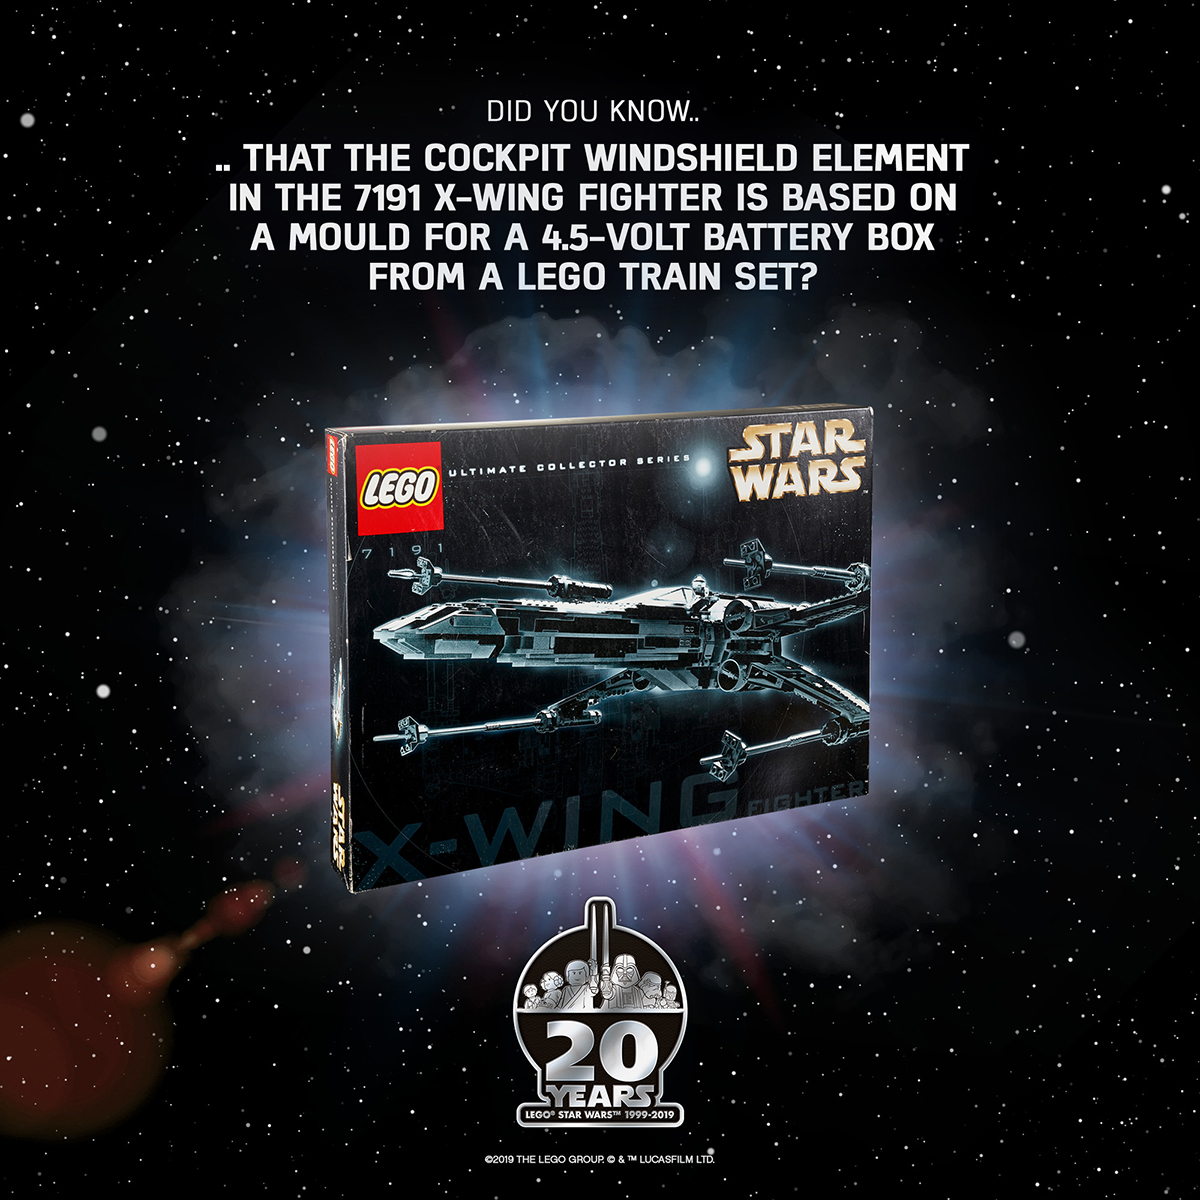 LEGO Star Wars 20th Anniversary